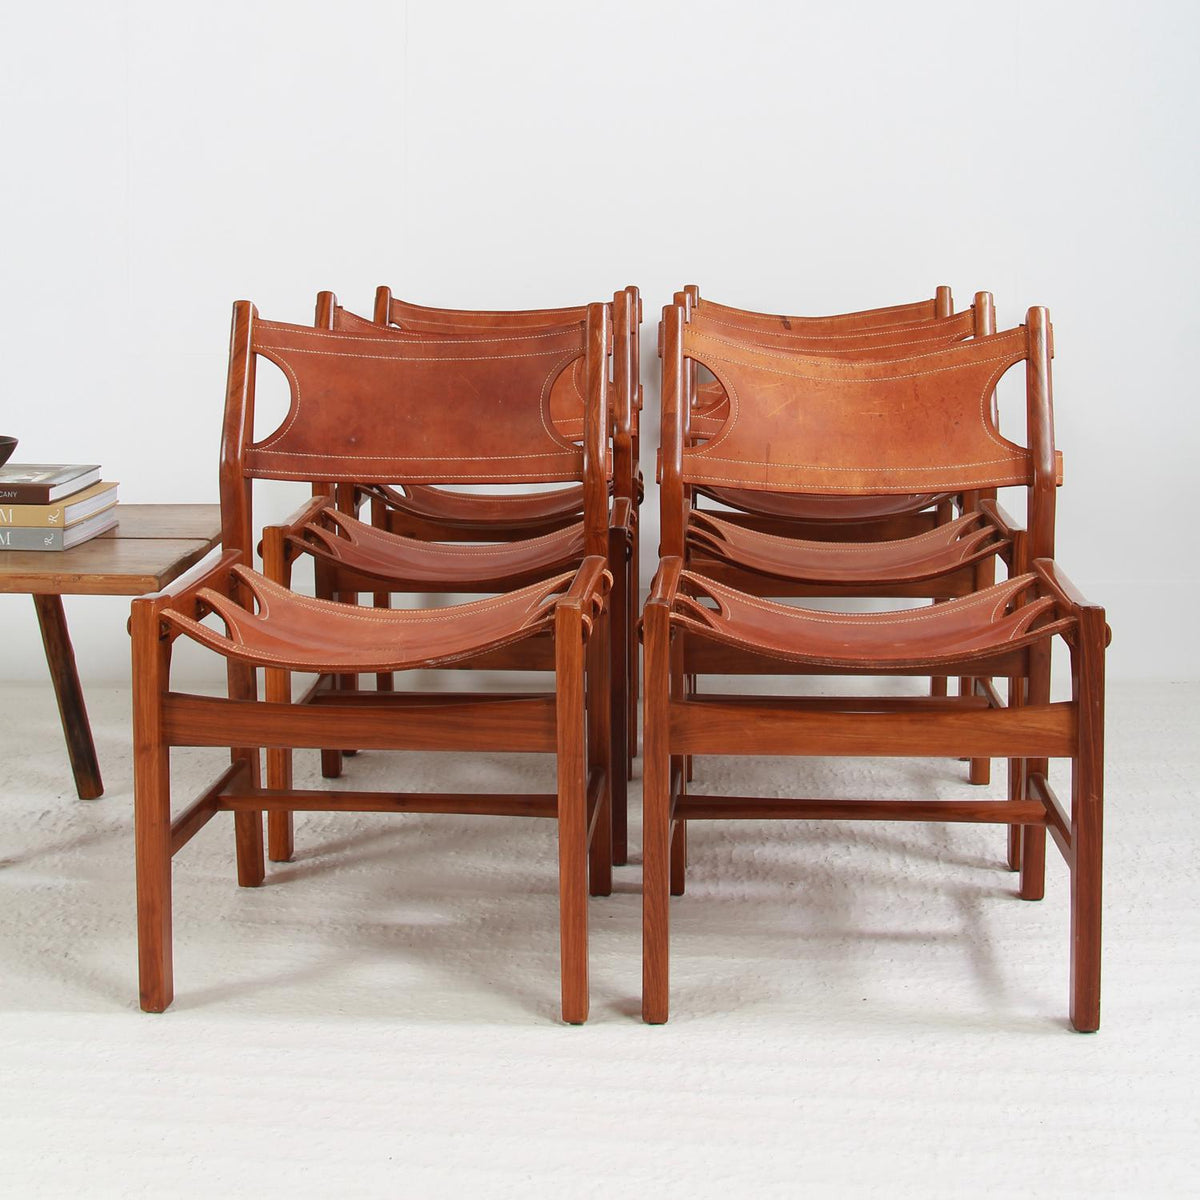 PAIR OF MID CENTURY Designer LEATHER LOUNGE CHAIRS